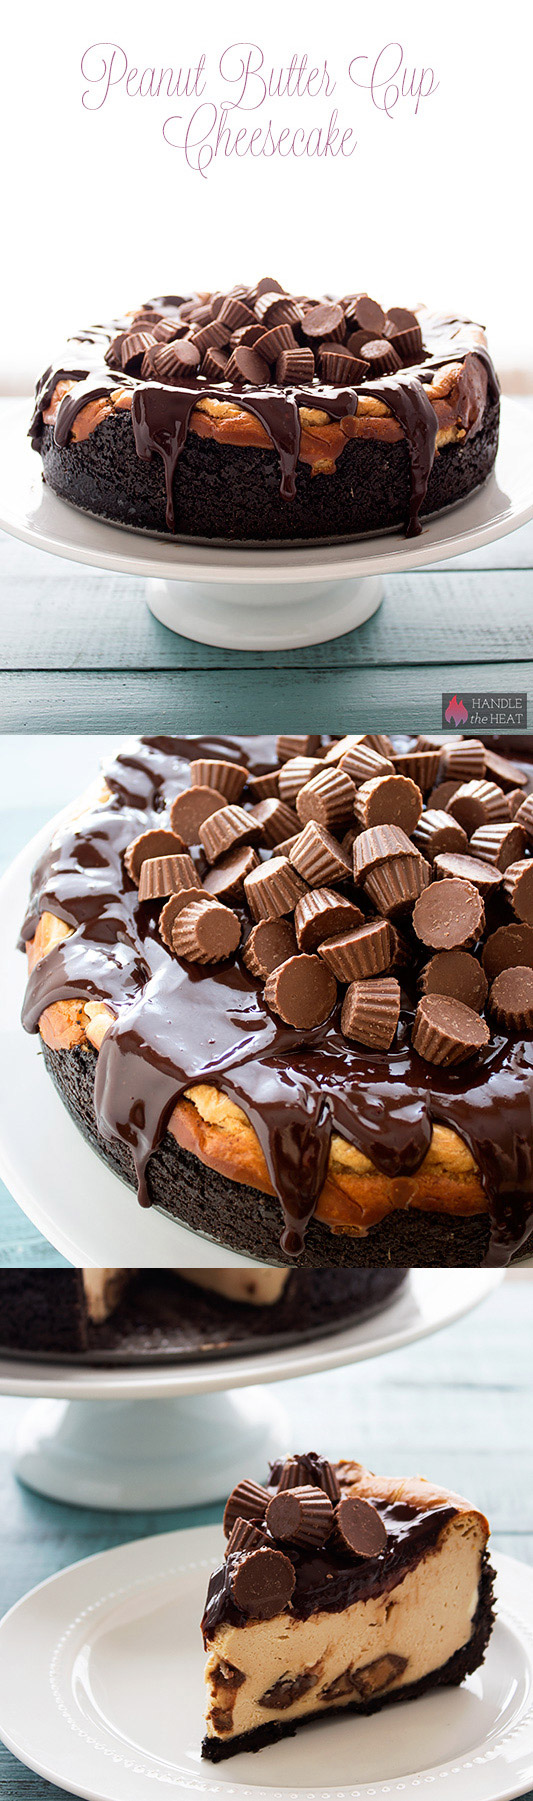 Crazy sinfully delicious!! This has gone crazy on Pinterest!!